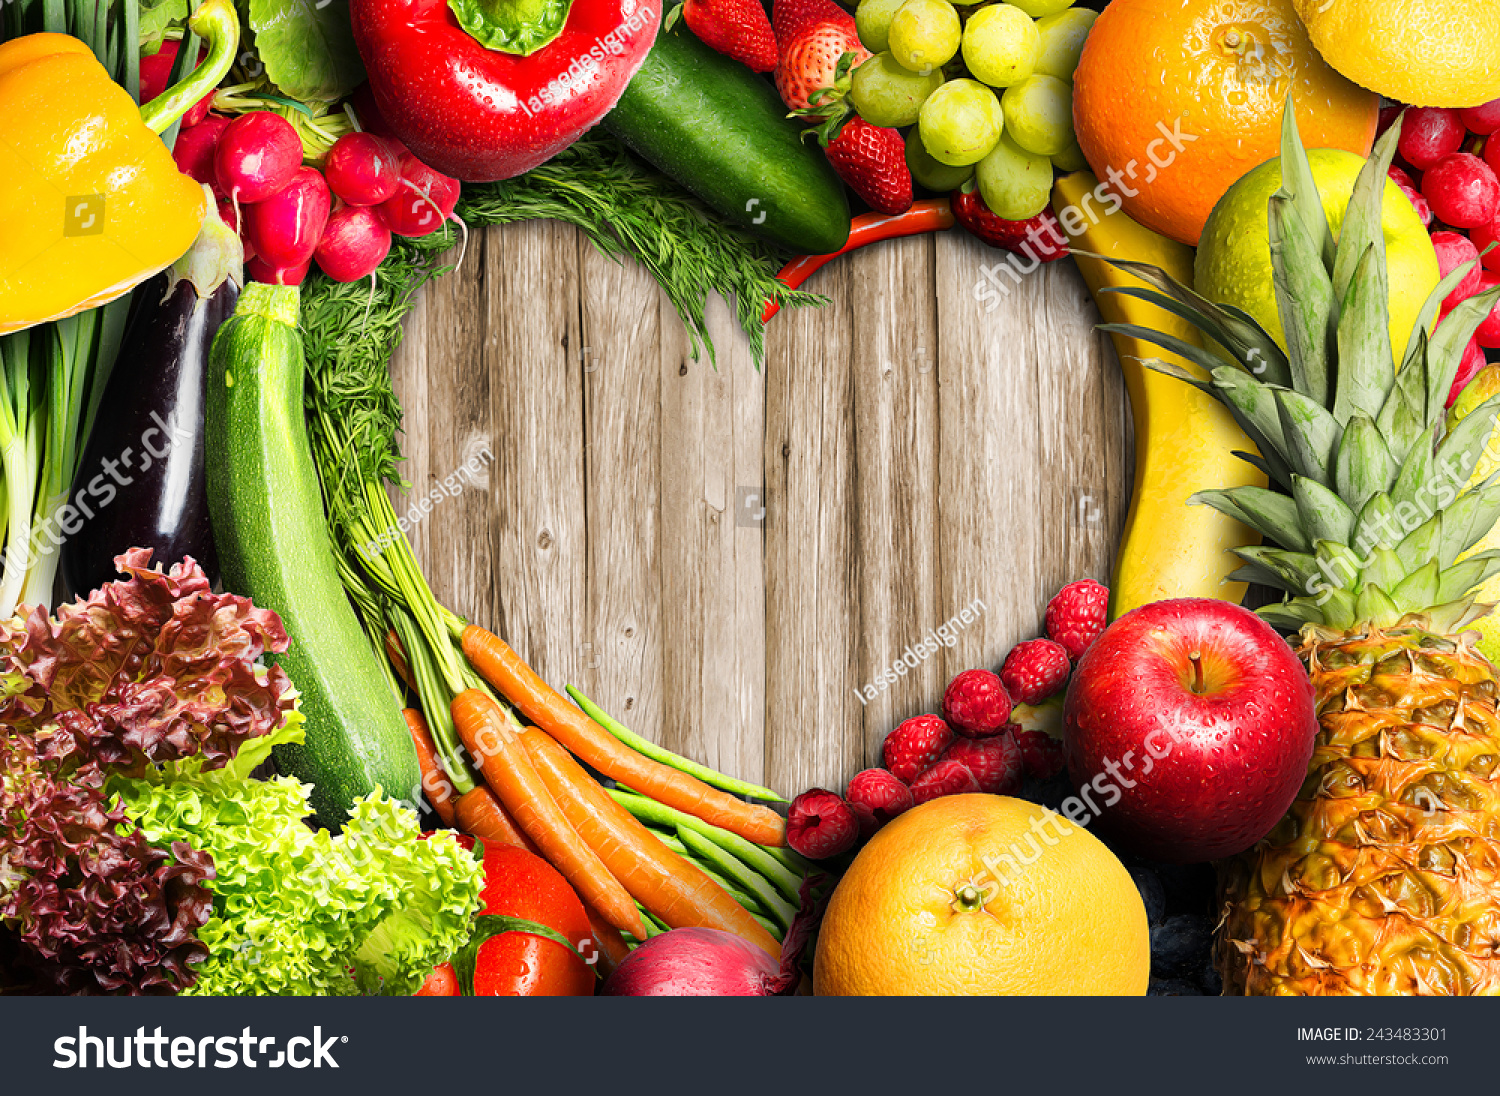 healthy fruits for the heart is tomato a fruit or a vegetable